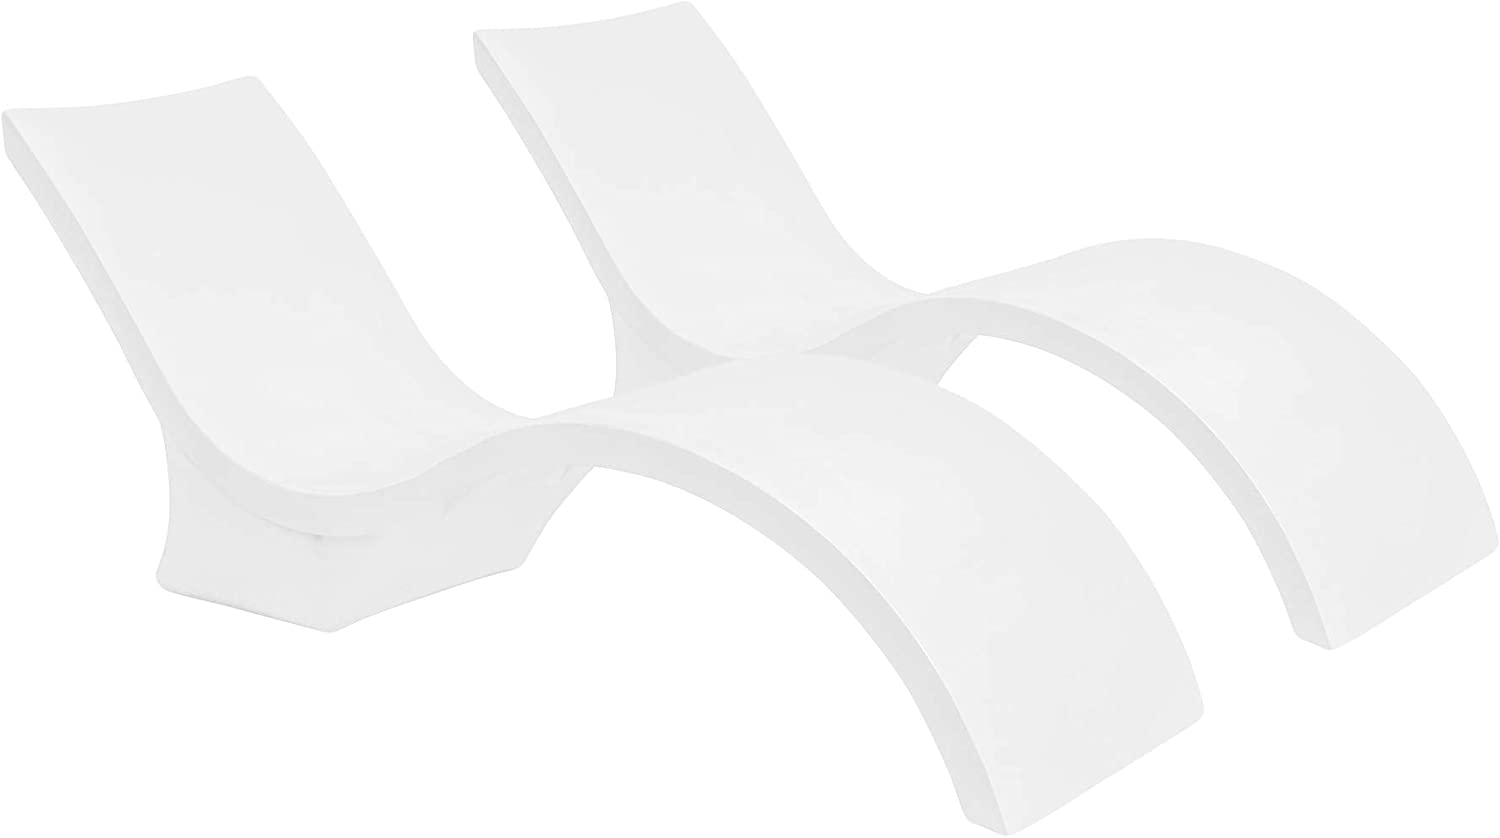 Ledge Lounger in-Pool Chaise Deep Lounge for 10-15 in. of Water Set of 2, White